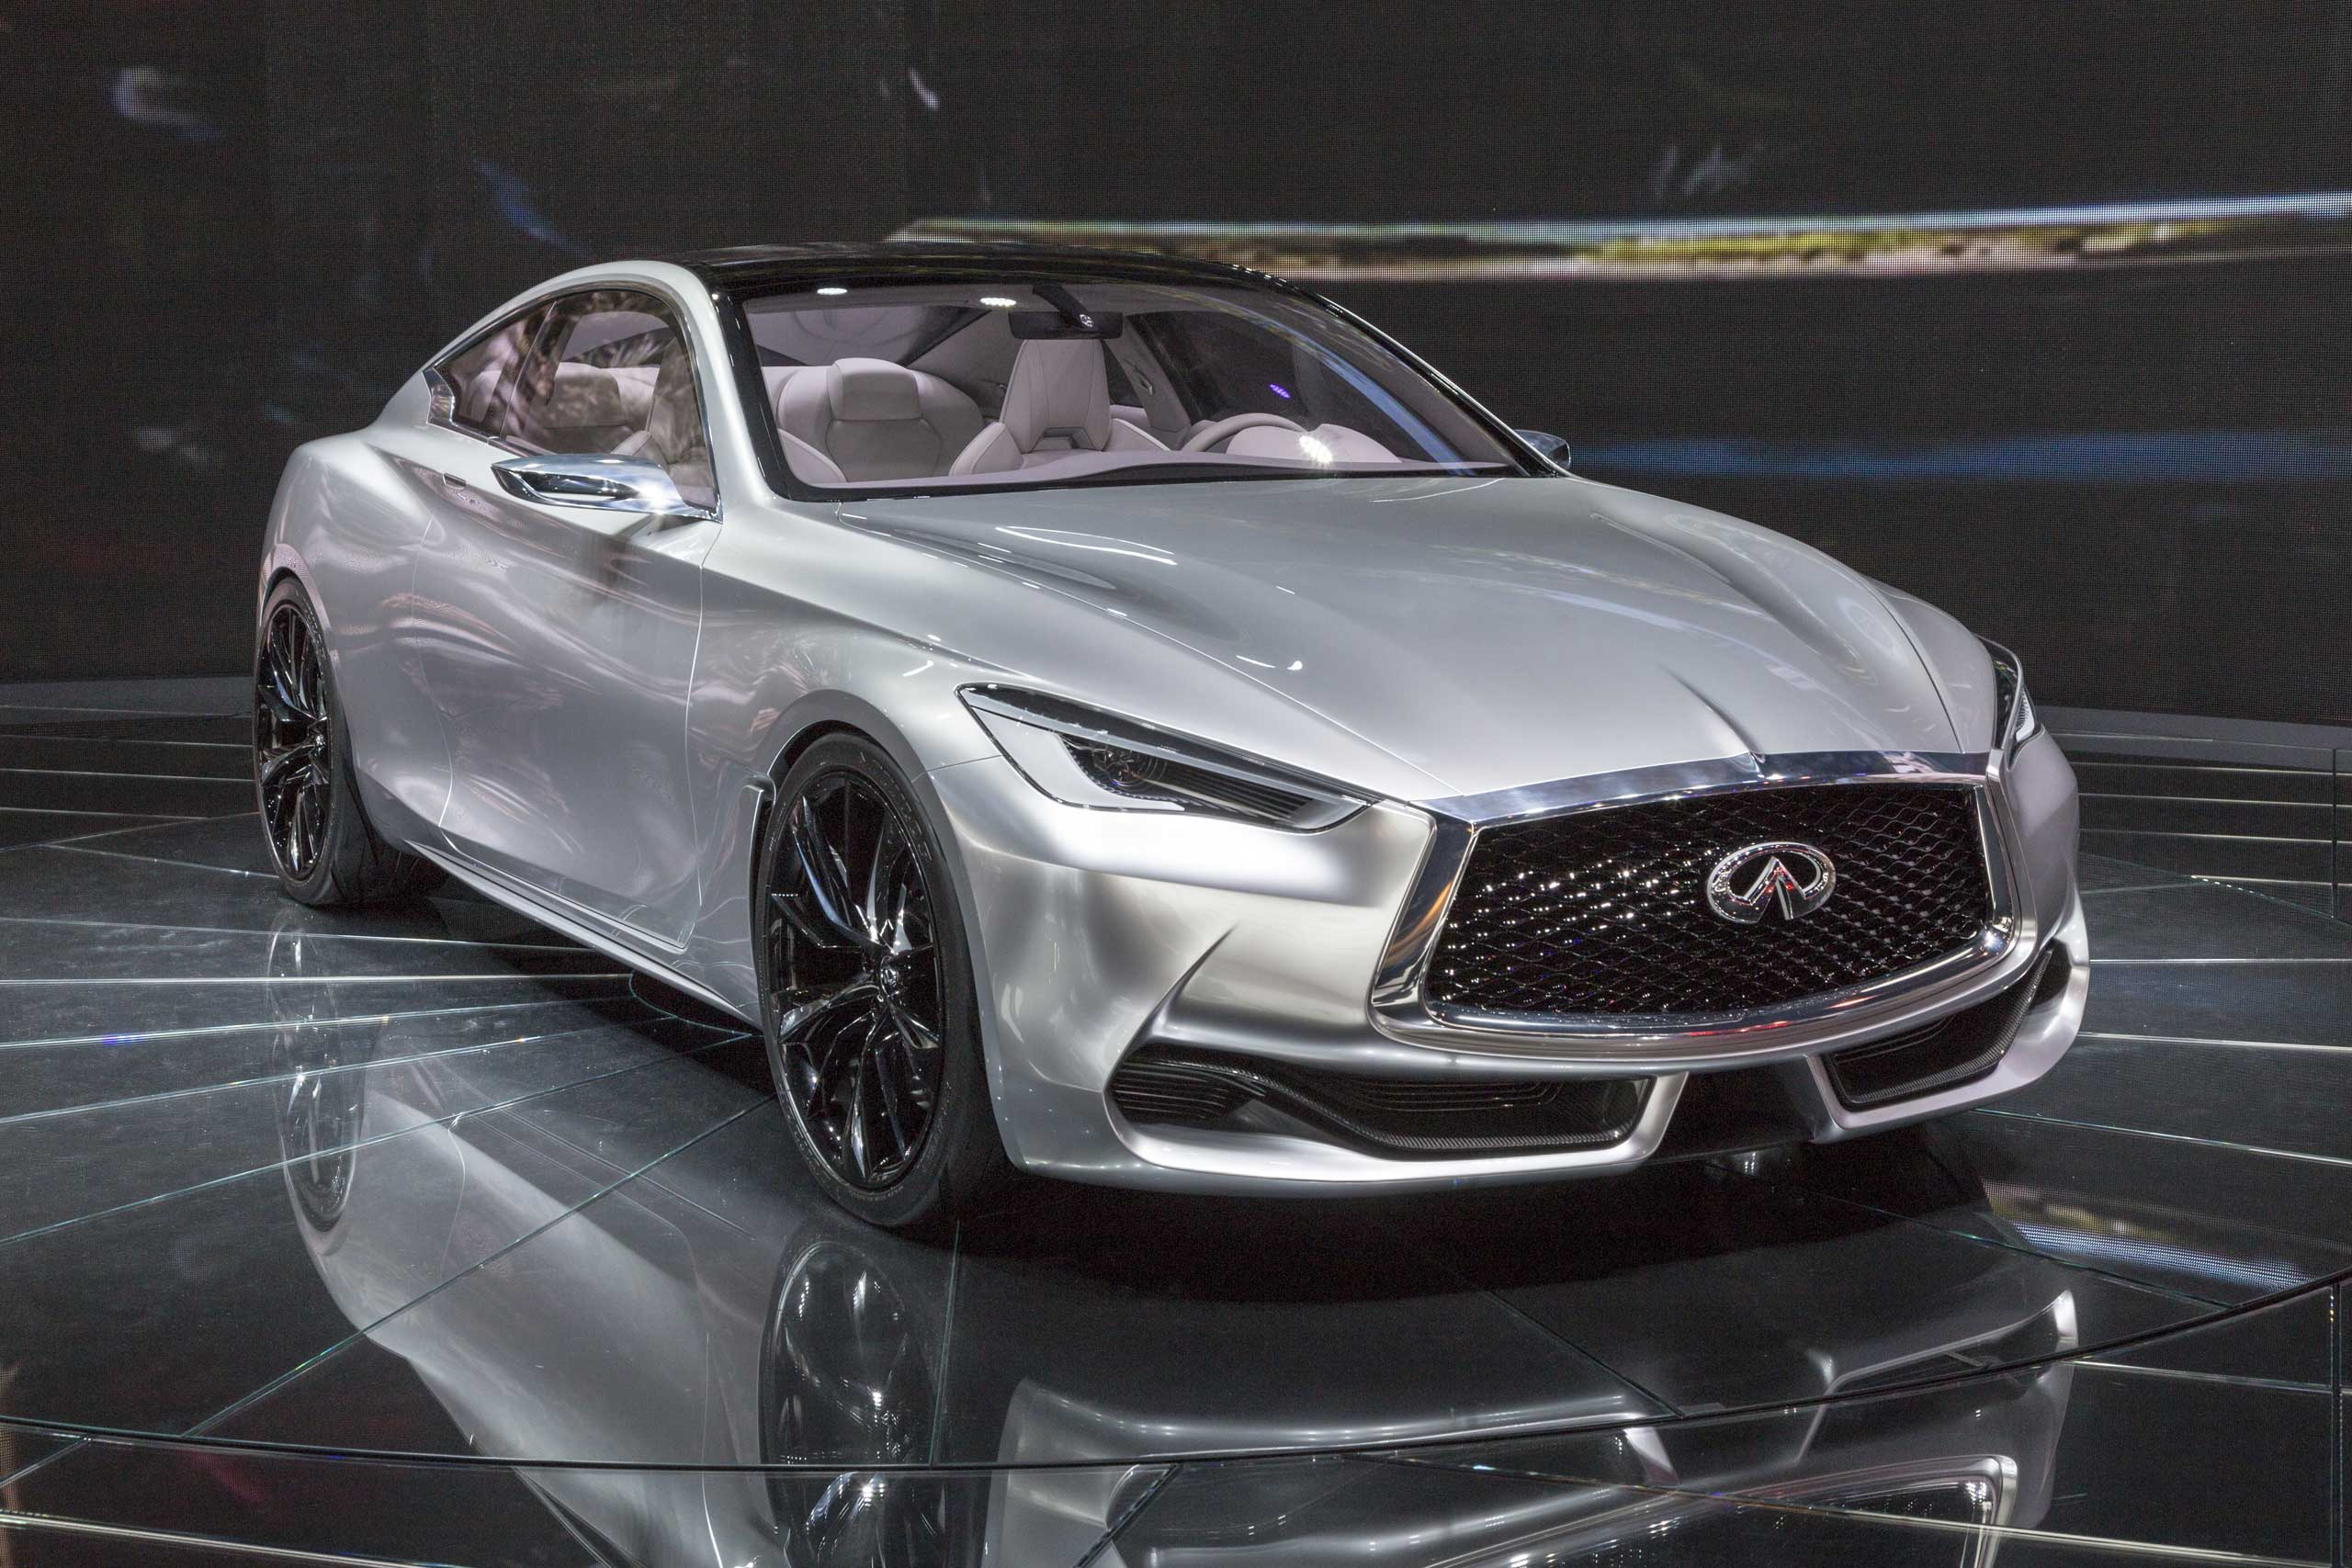 Scheduled for release in 2016, the Infiniti Q60 Coupe will have a turbocharged 3.0-liter V6 in a stunning aluminum body on Jan. 12, 2015 in Detroit.